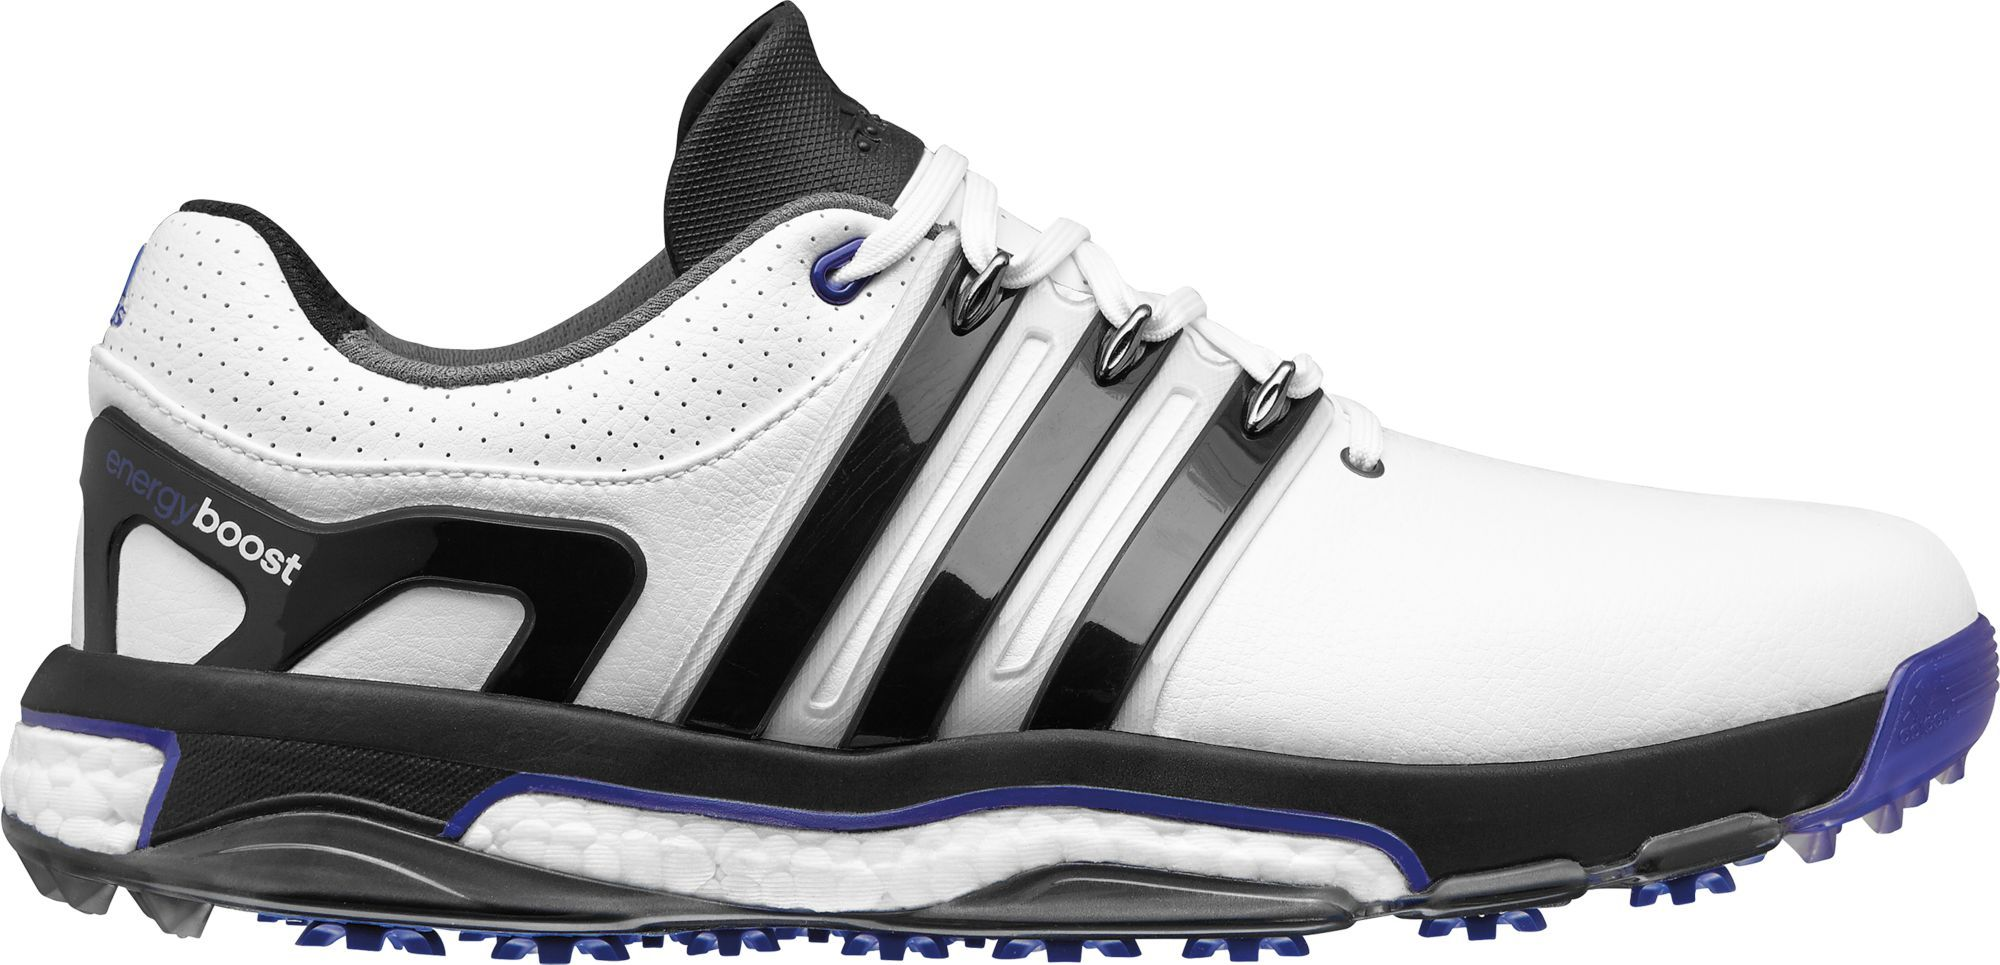 newest 968ee ff5ed adidas asym energy boost Golf Shoes are built to give you stability and  traction so you can worry about your shot, not your shoes  Golf Galaxy